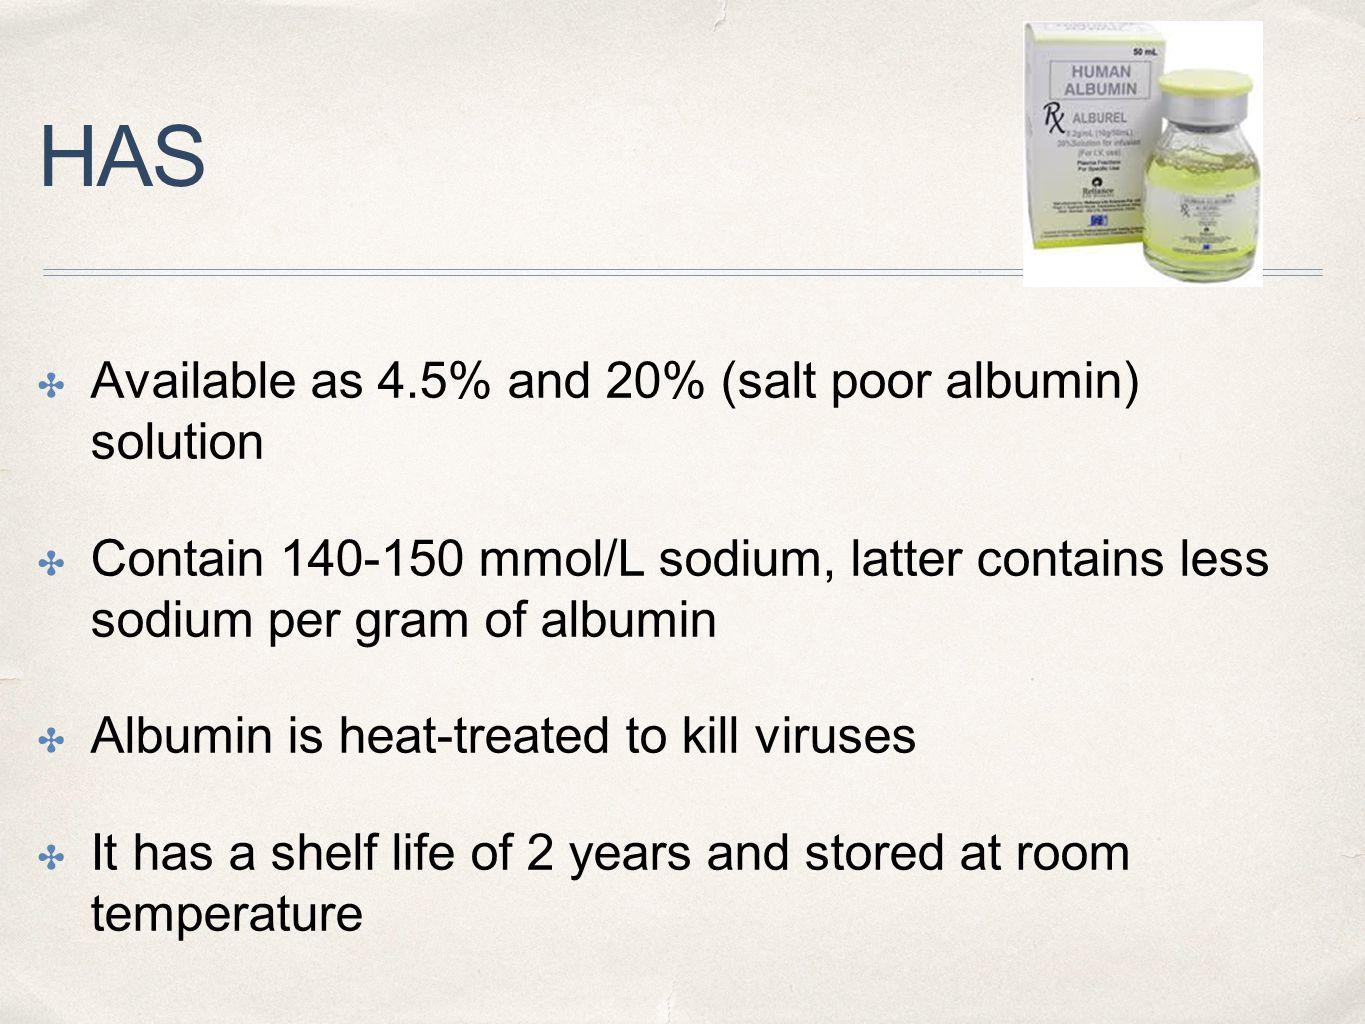 HAS Available as 4.5% and 20% (salt poor albumin) solution